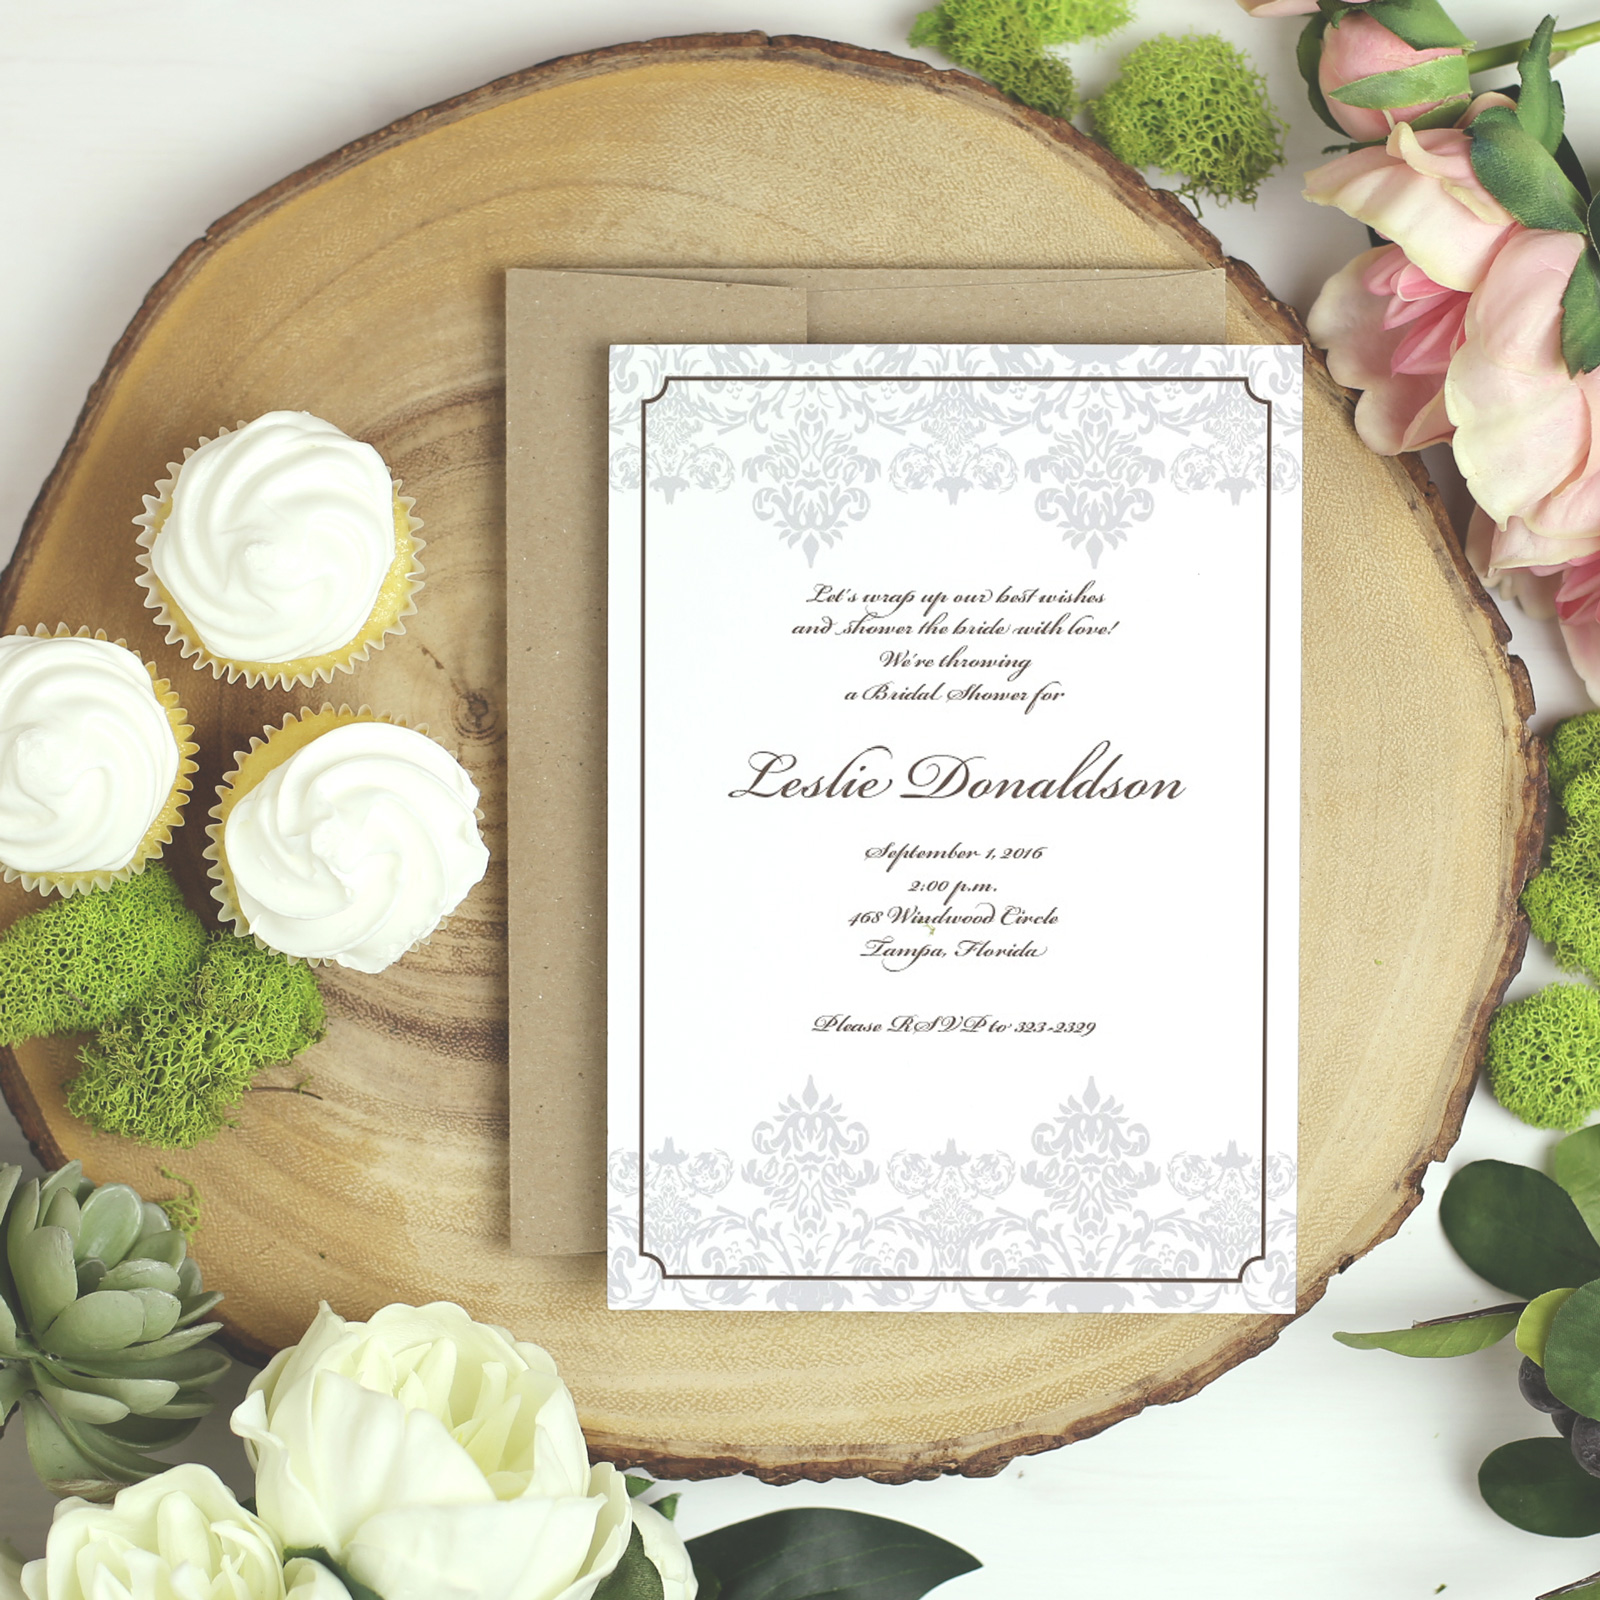 Basic Invite bridal shower invitations